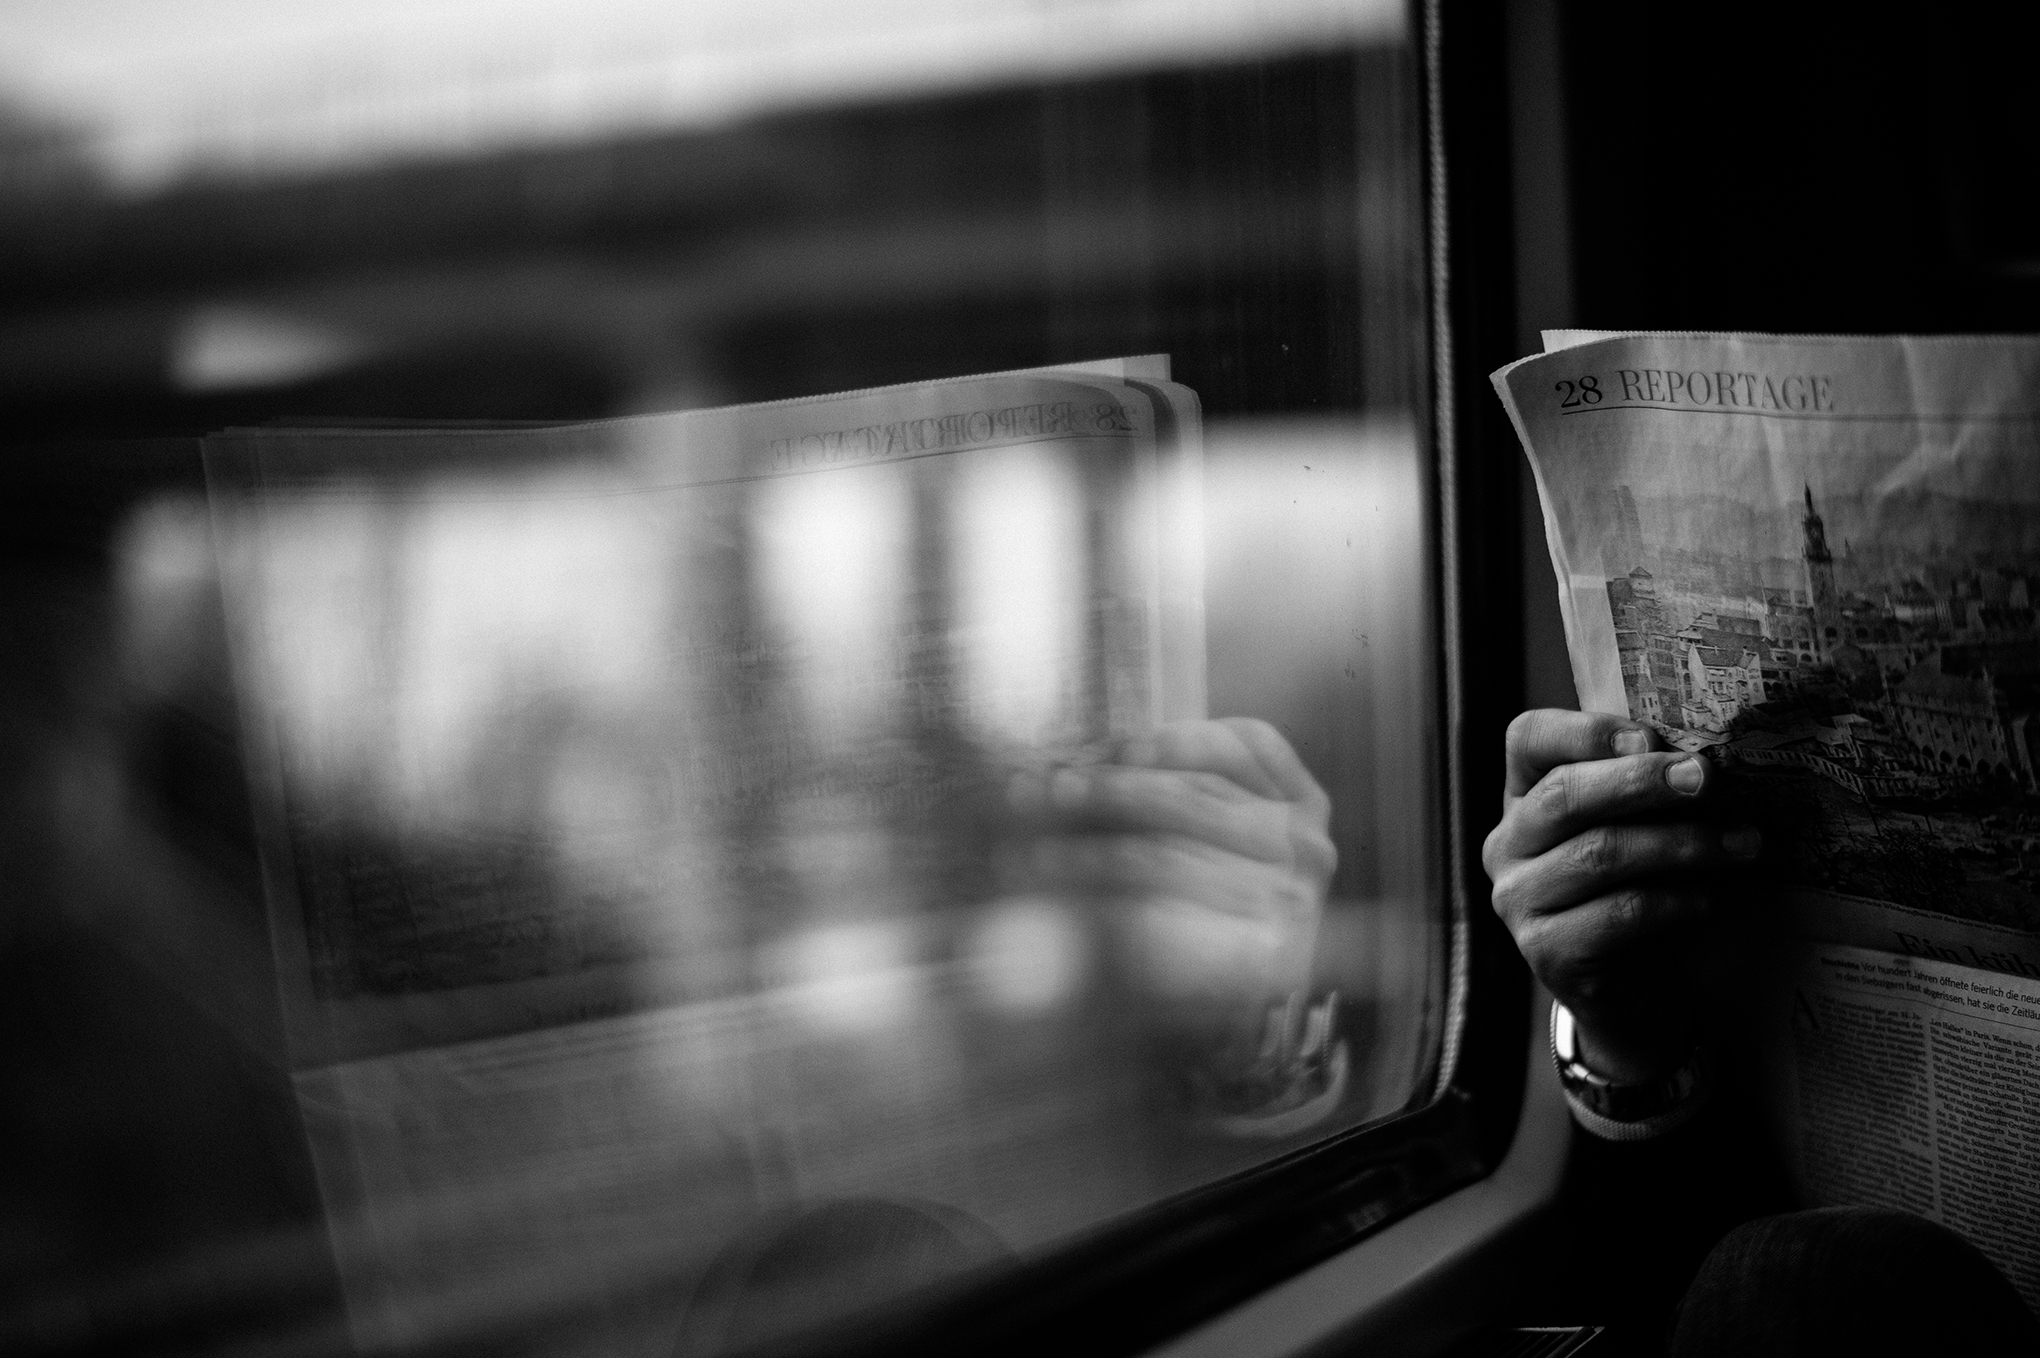 train-newspaper